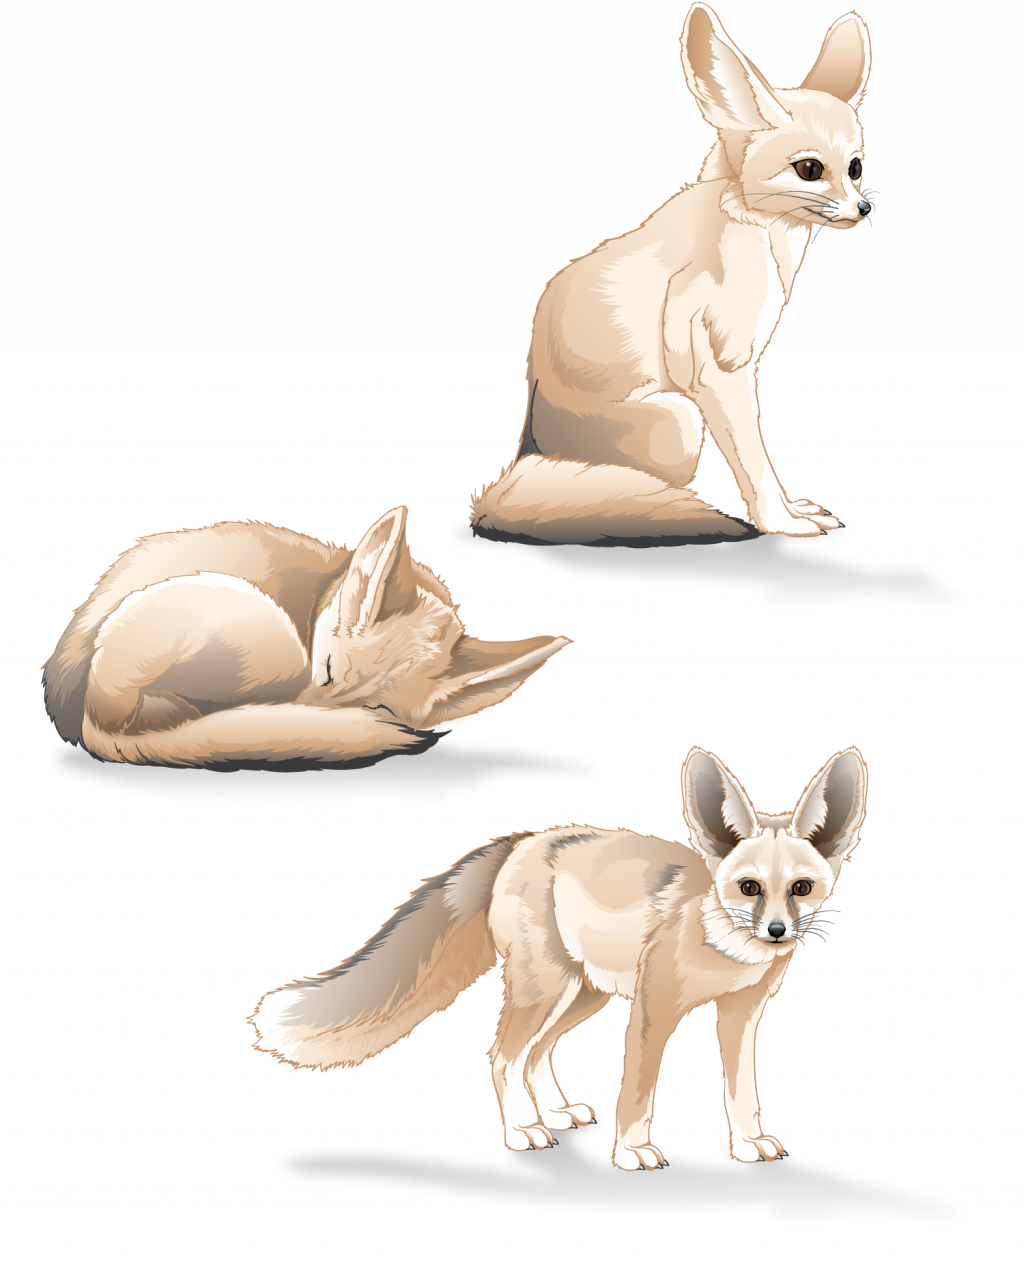 Fennec Fox study. Adobe Illustrator. October 2016.